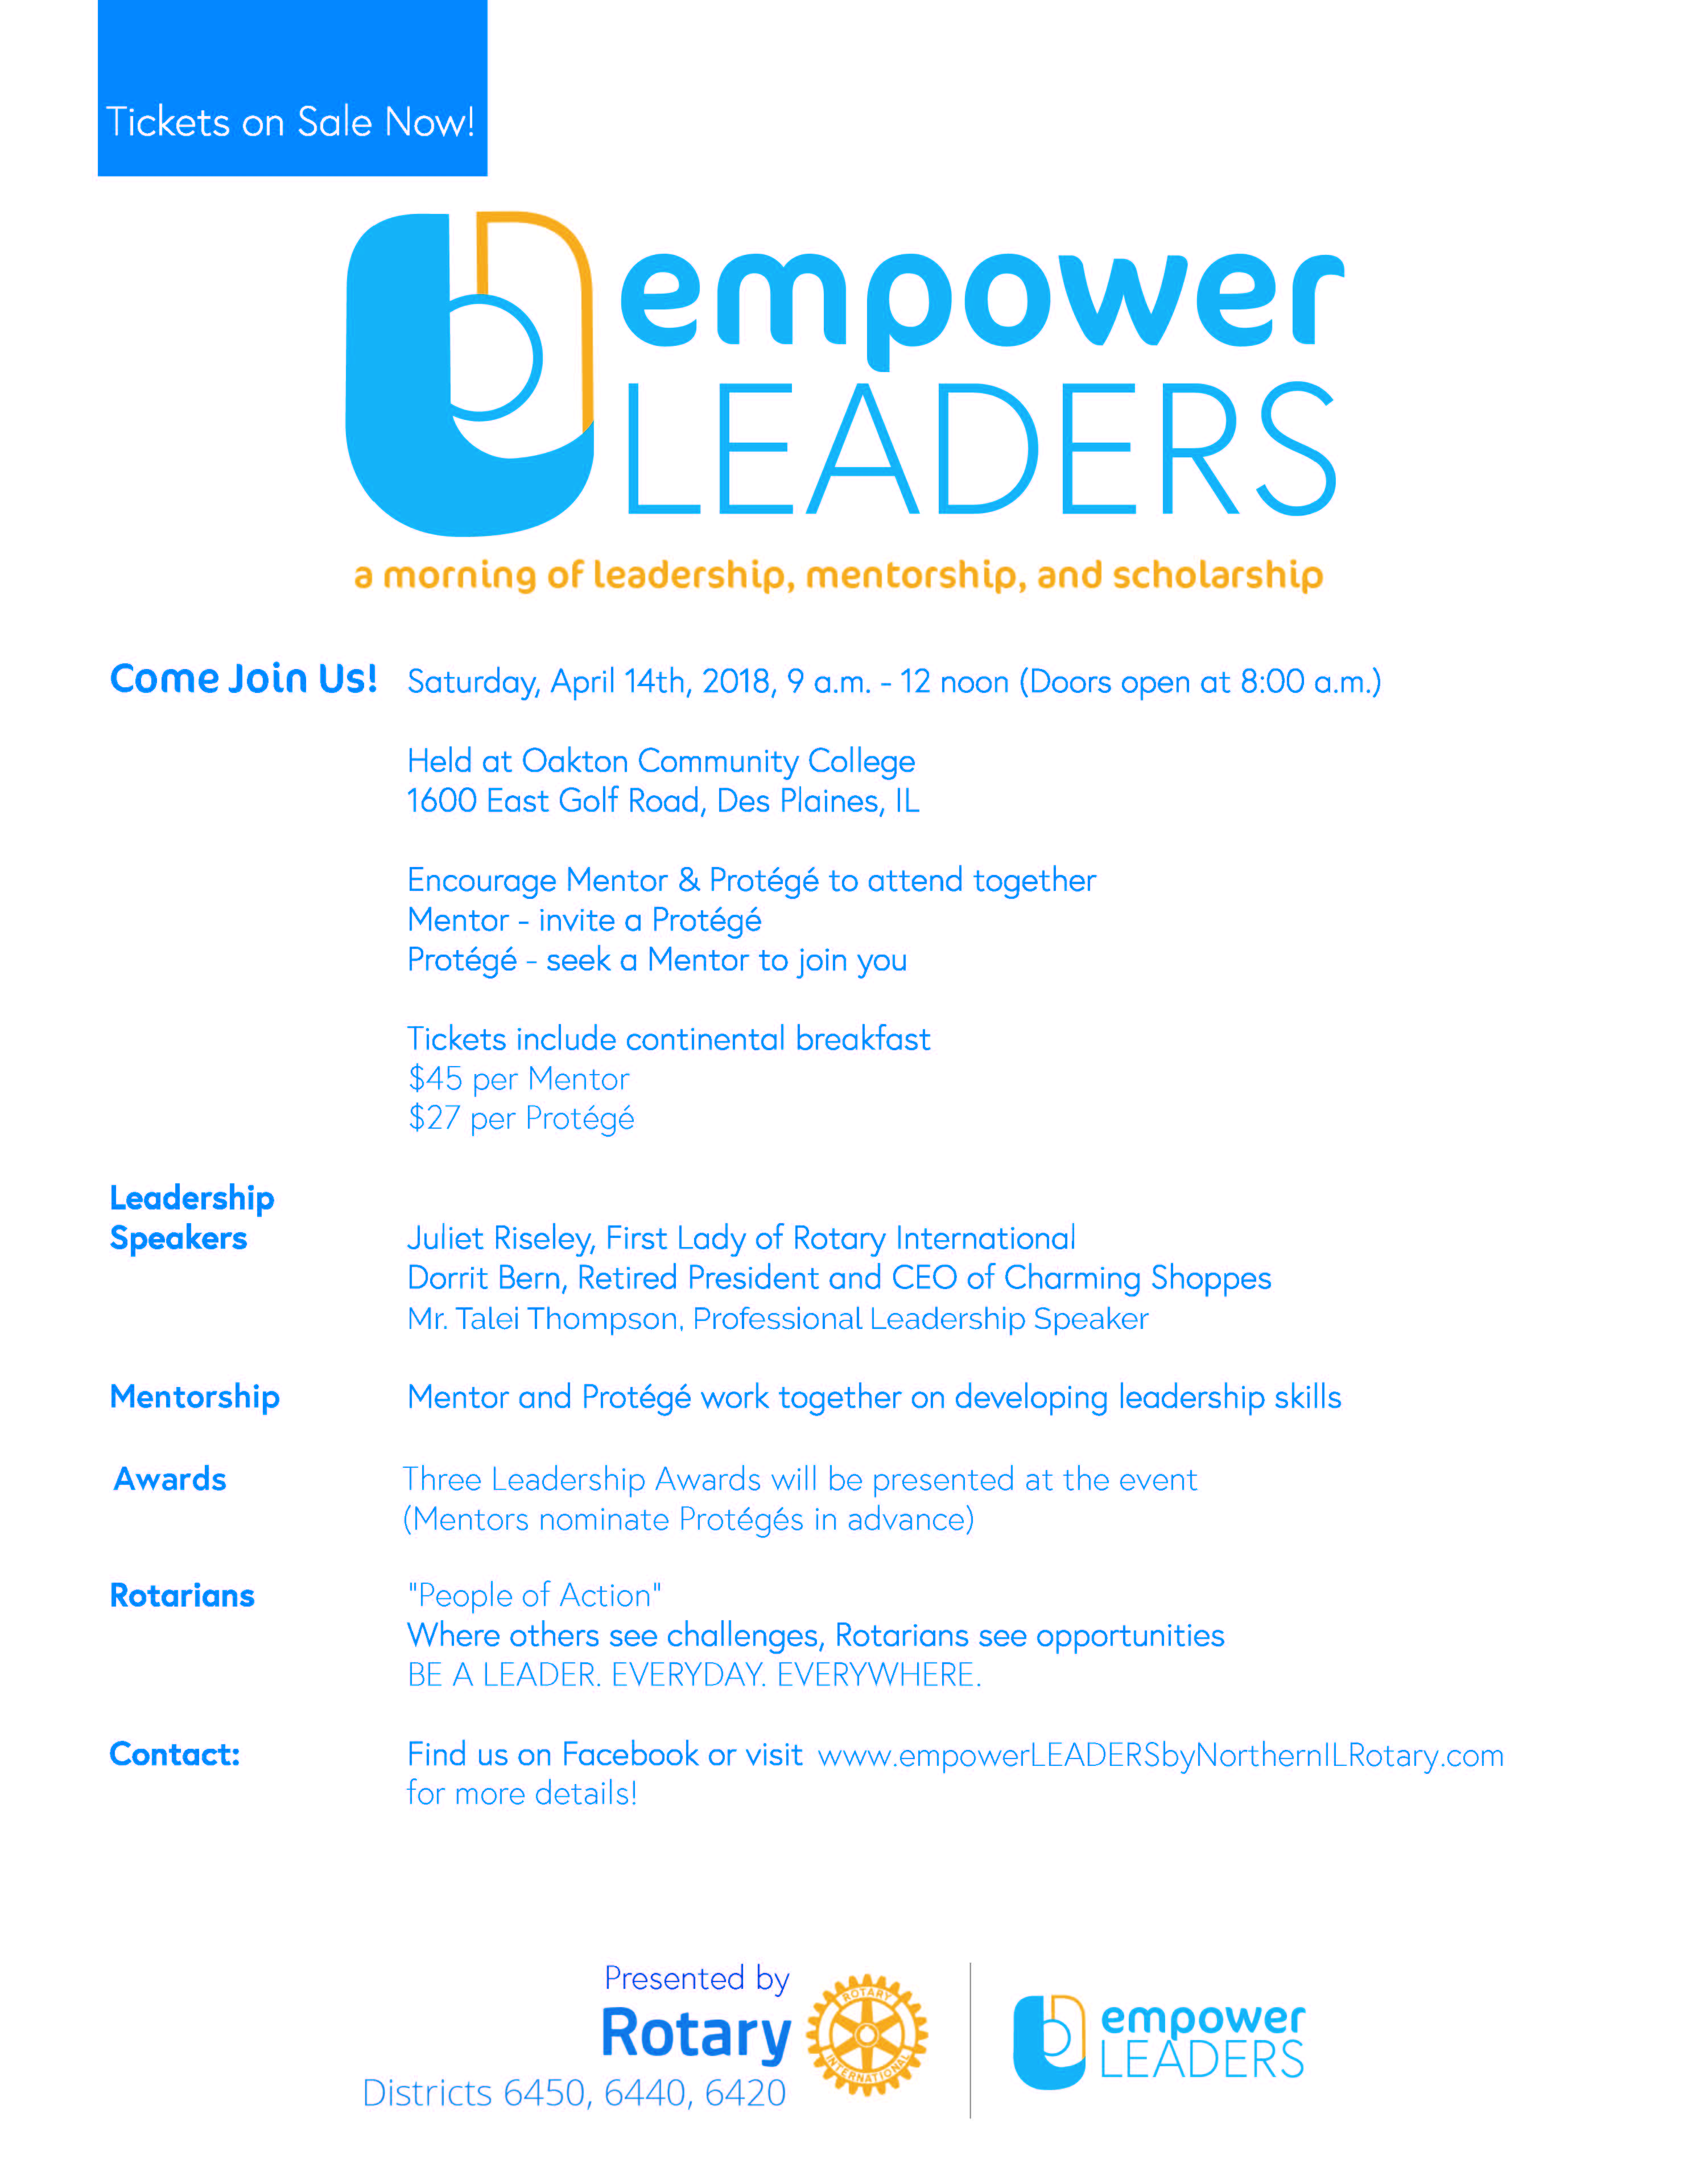 Empower Leaders 3-12-18